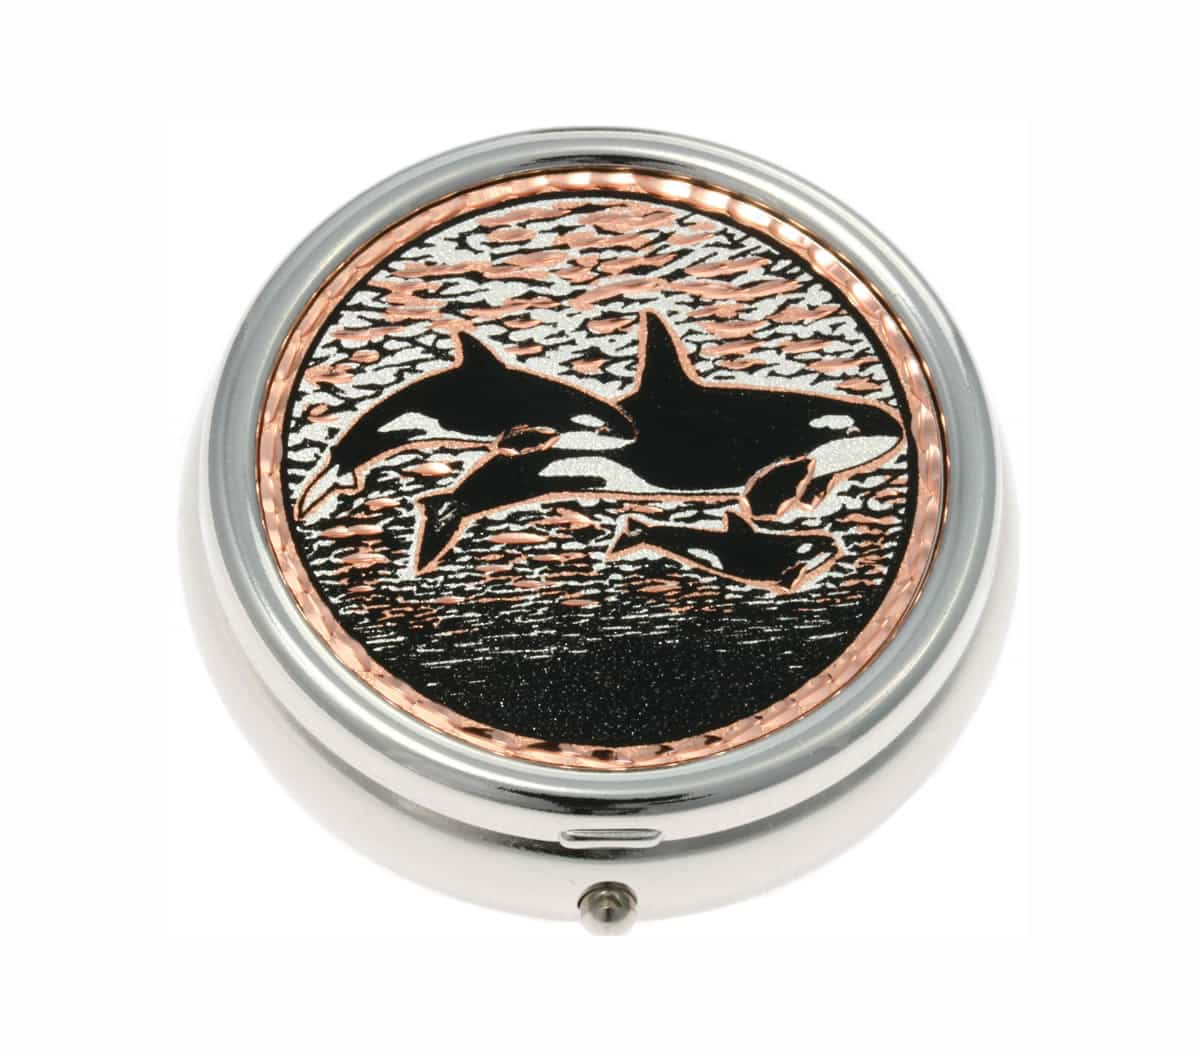 Unique and Elegant Silver Color Pill Boxes Decorated with Killer Whale Copper Artwork